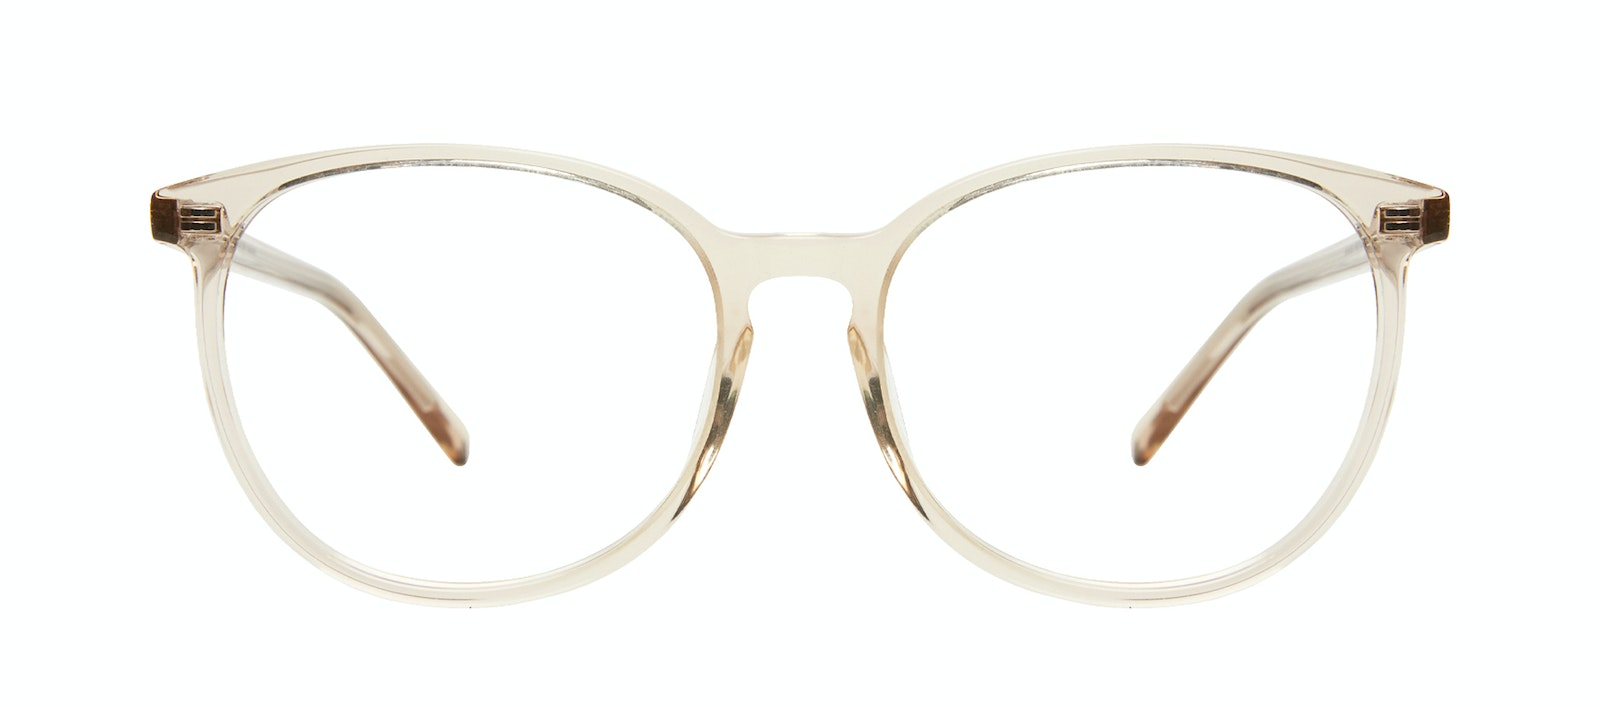 Affordable Fashion Glasses Round Eyeglasses Women Femme Libre L Margo Front